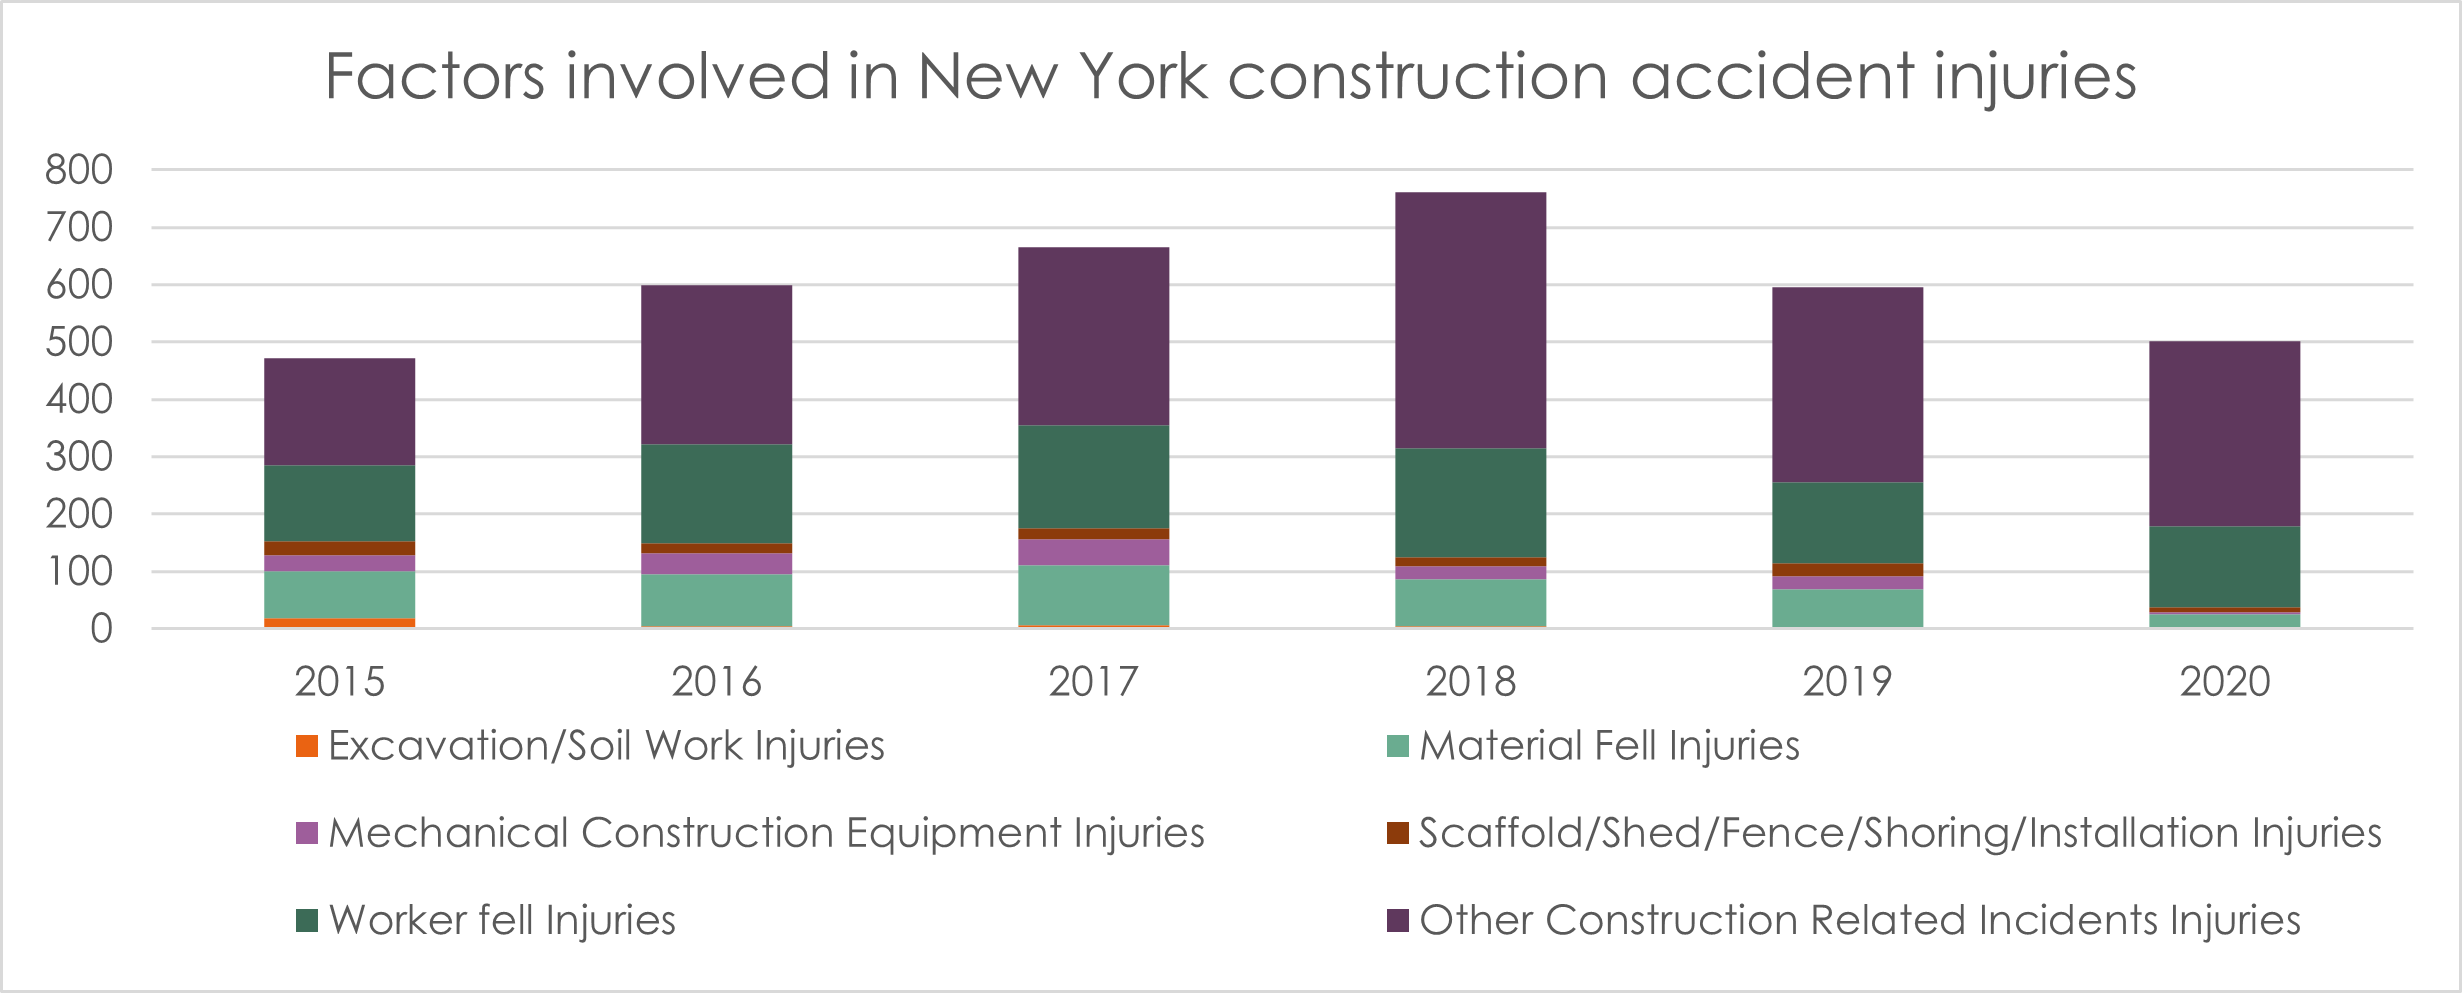 Factors in 2020 NYC construction accident injuries